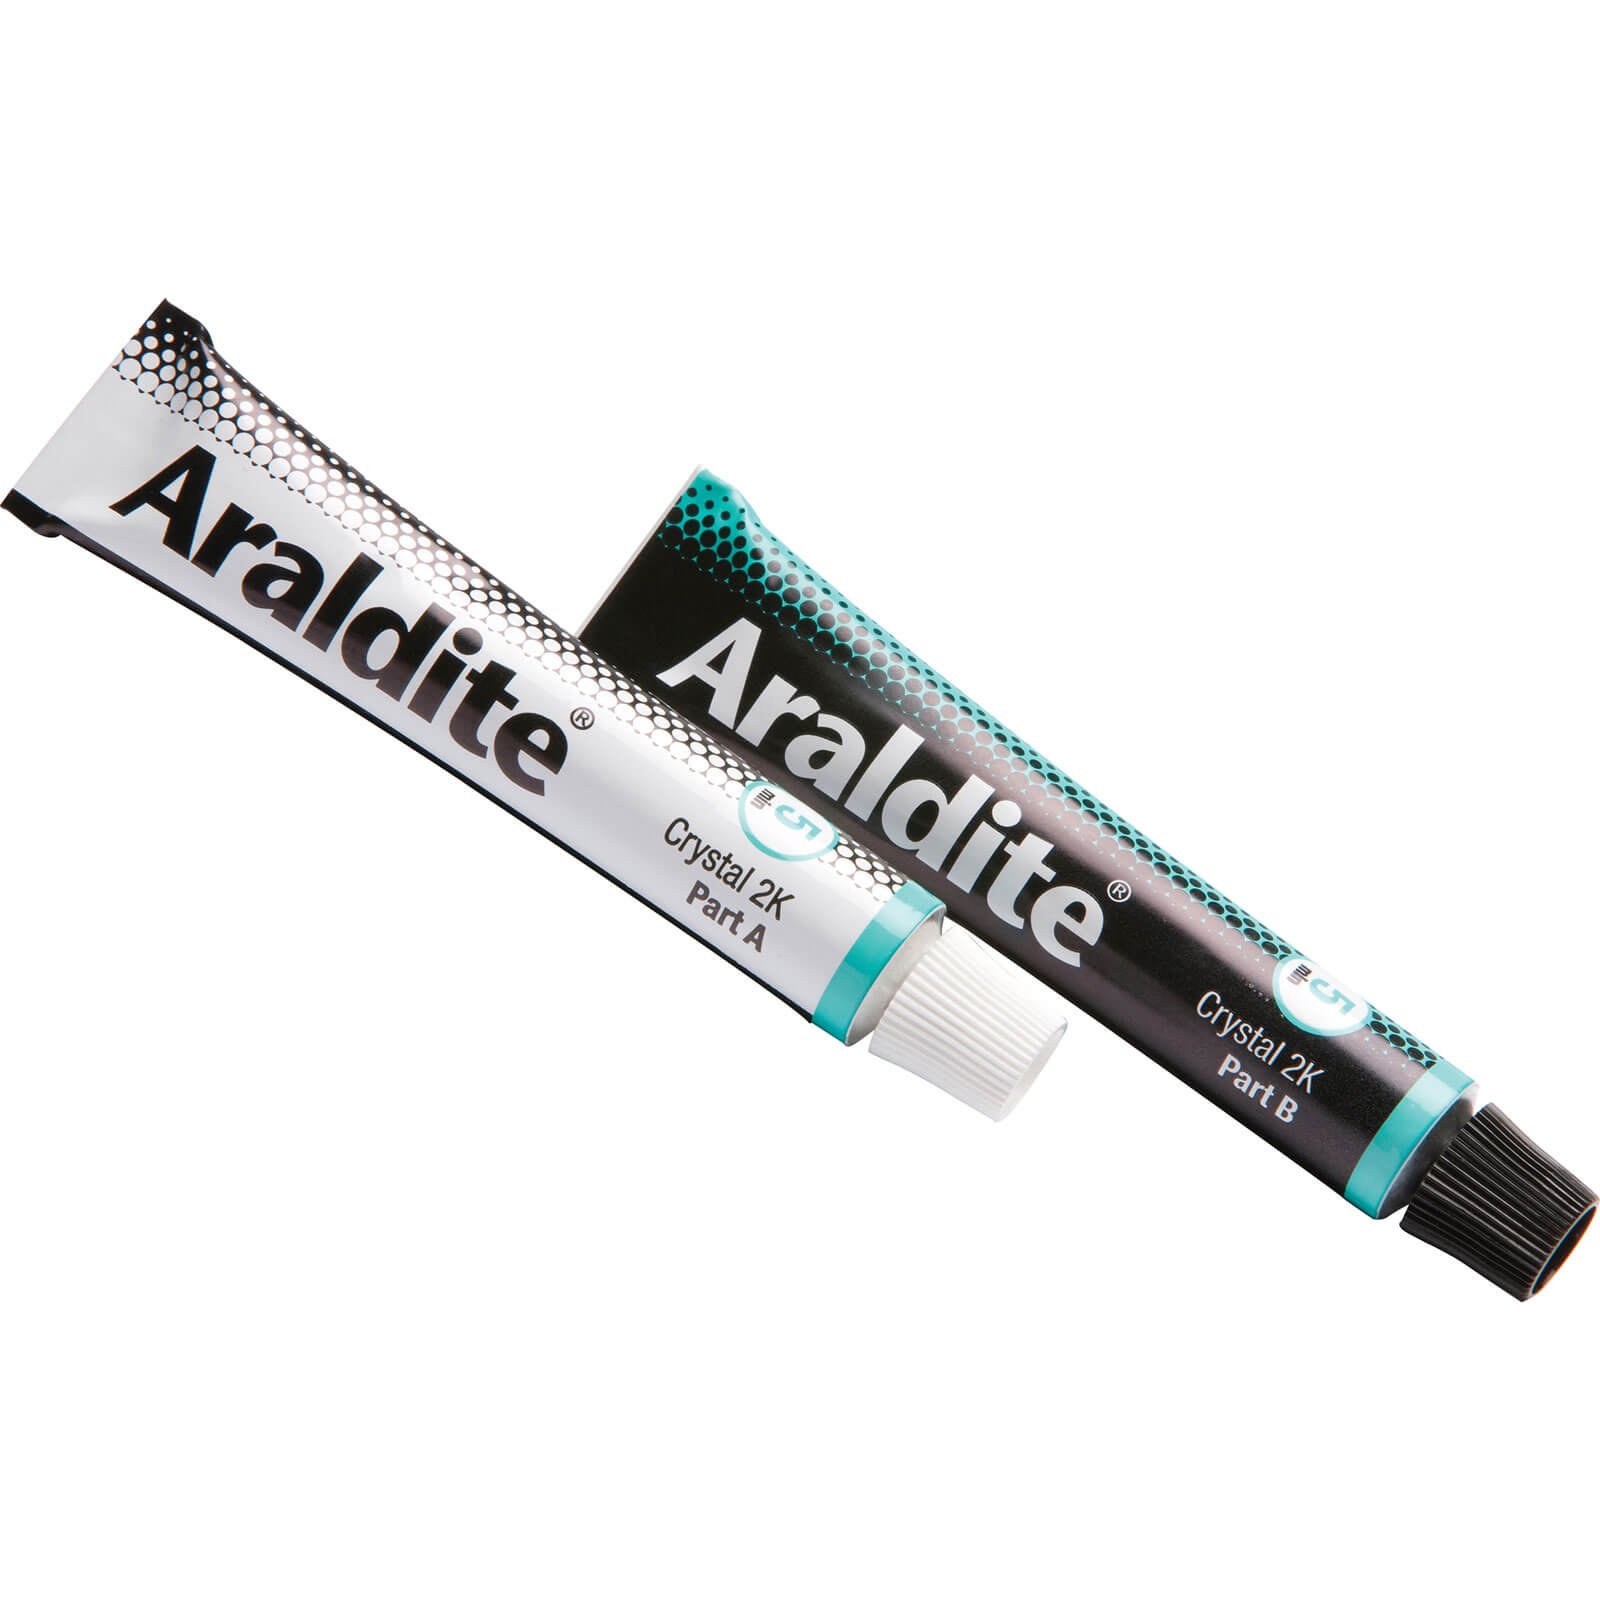 Image of Araldite Crystal Two Component Adhesive